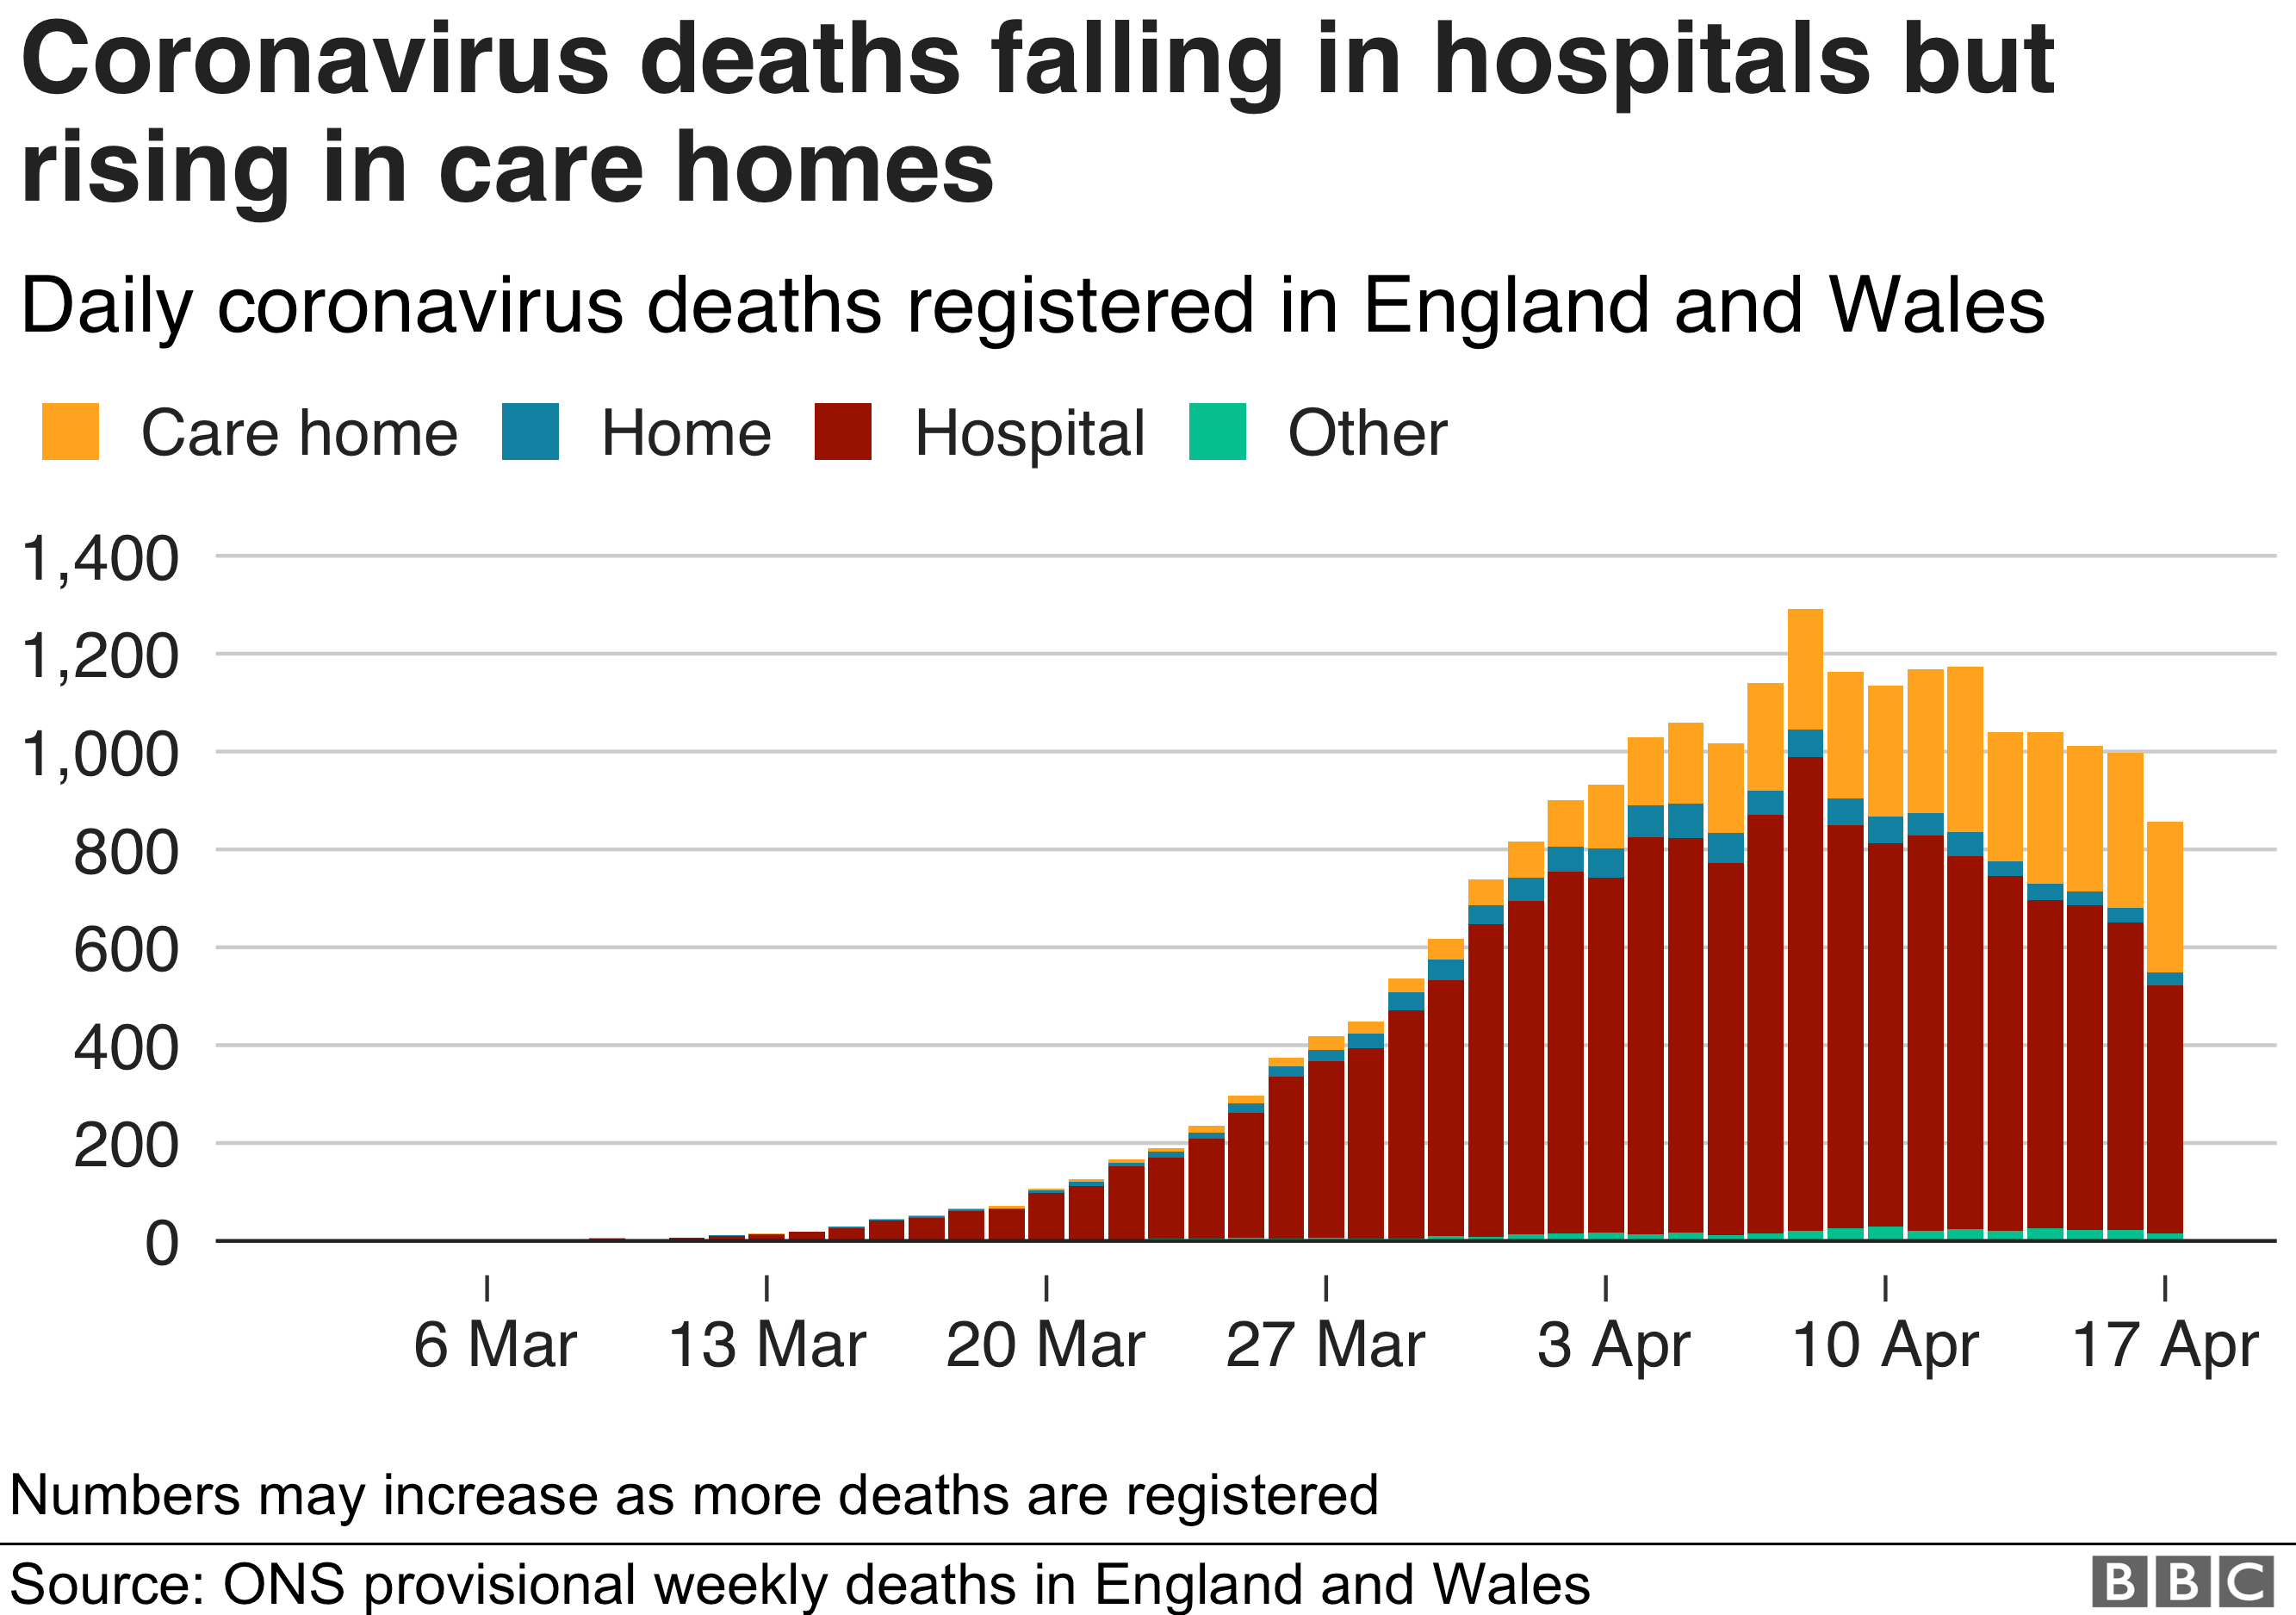 Chart from April 2020 shows coronavirus deaths rising in care homes